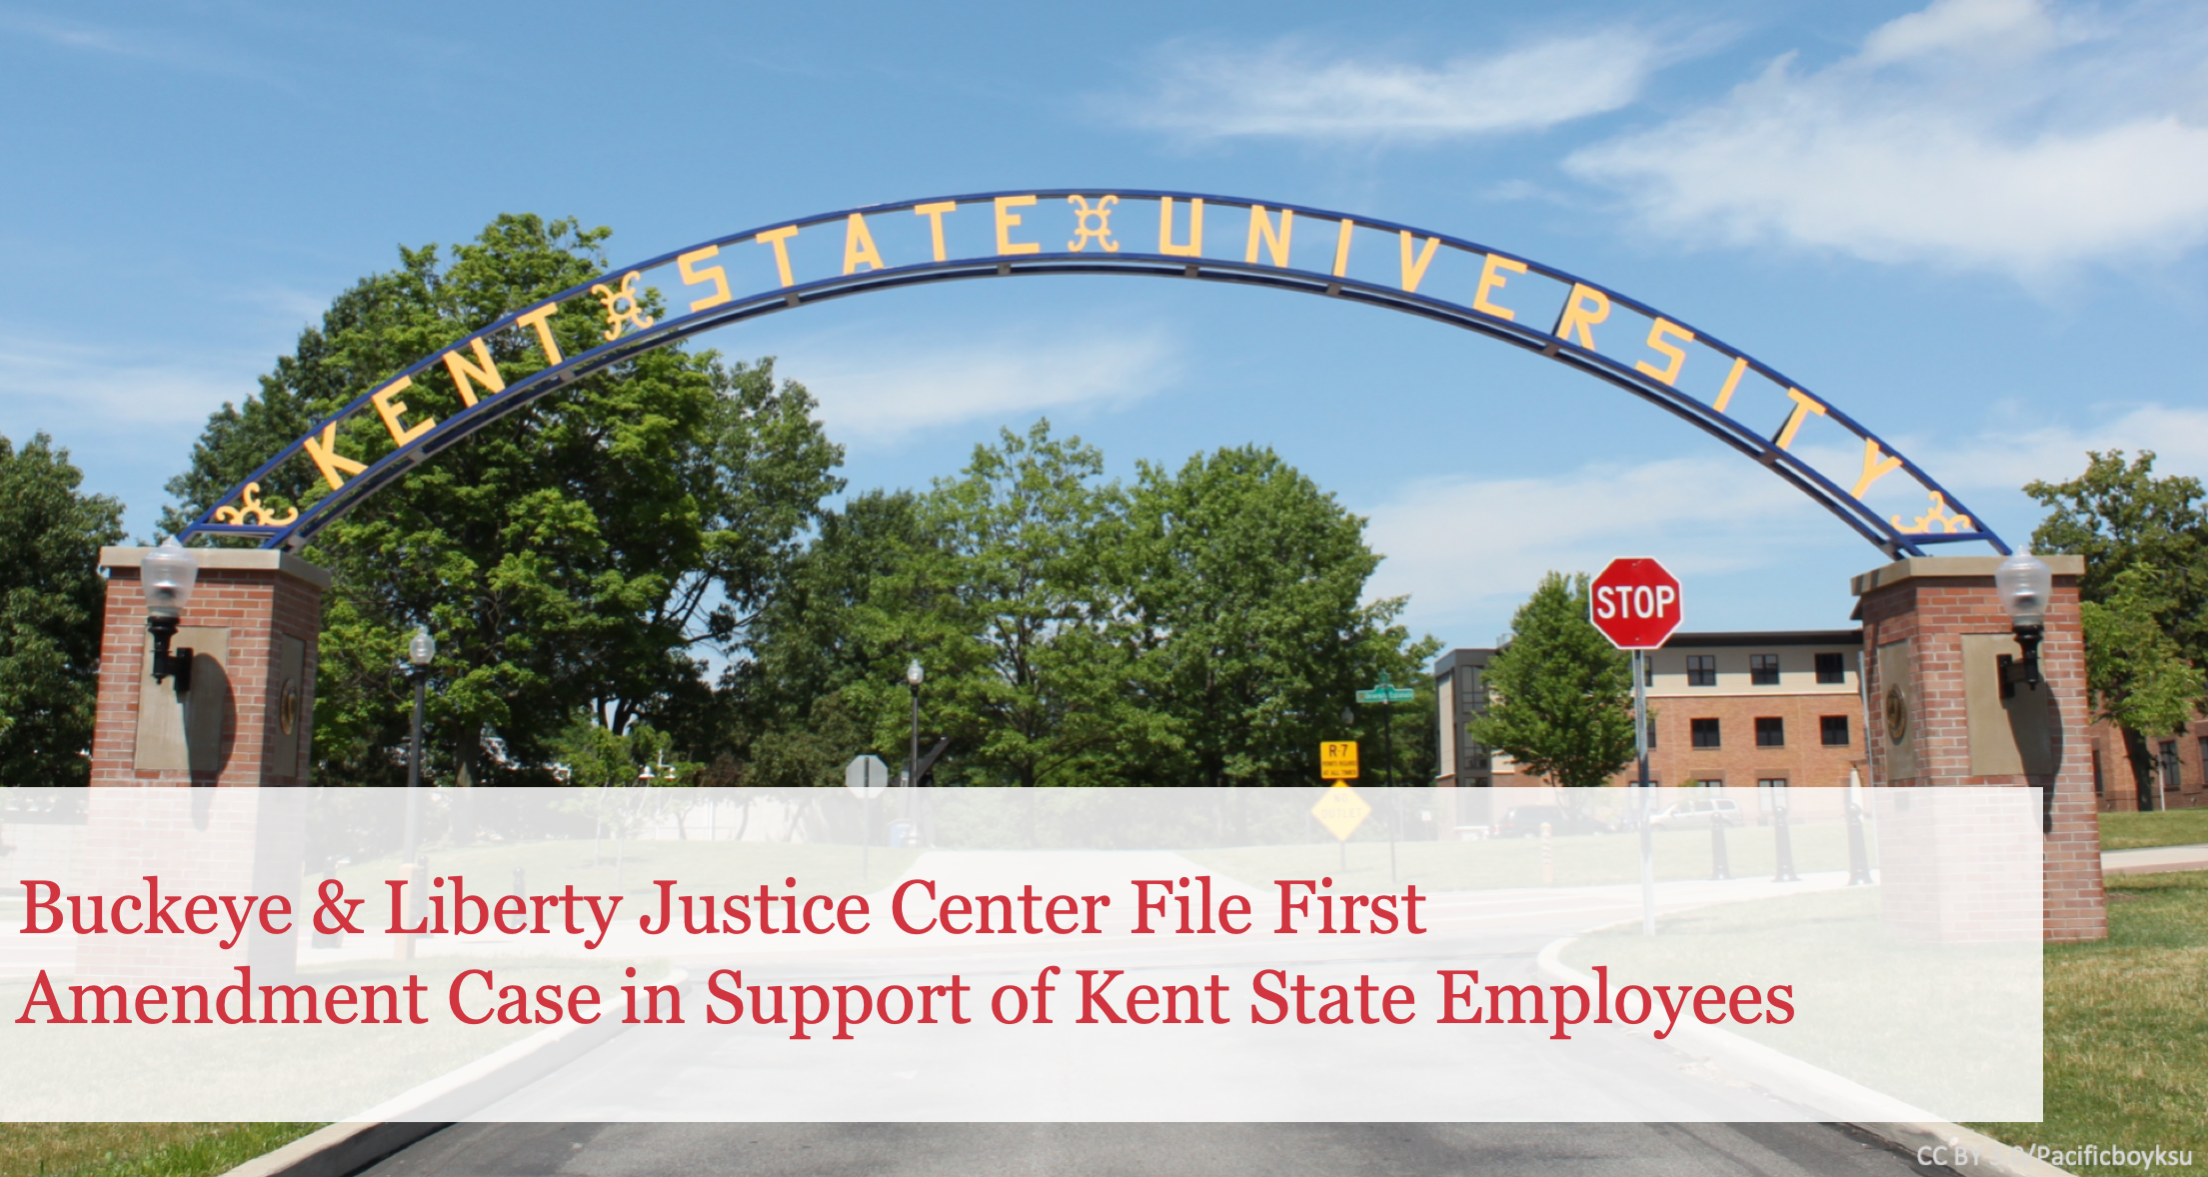 Kent State Employees Sue Over Illegal Union Dues